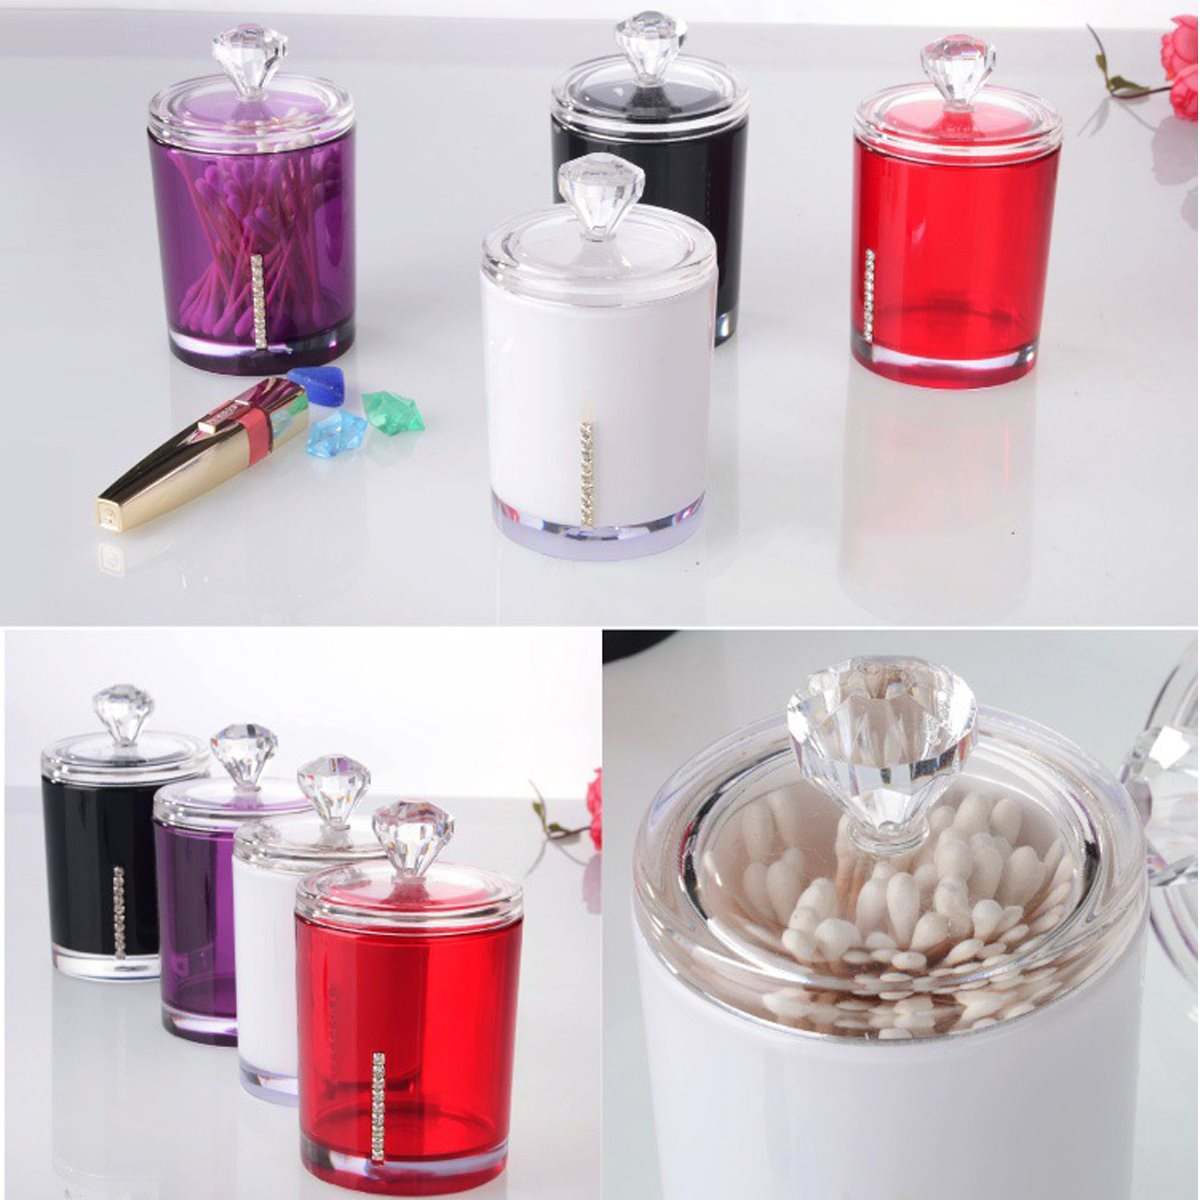 Acrylic Cotton Swab Bud Holder Dispenser Organizer Storage Box Cosmetic Container Home Storage Organization Multi-function(China (Mainland))